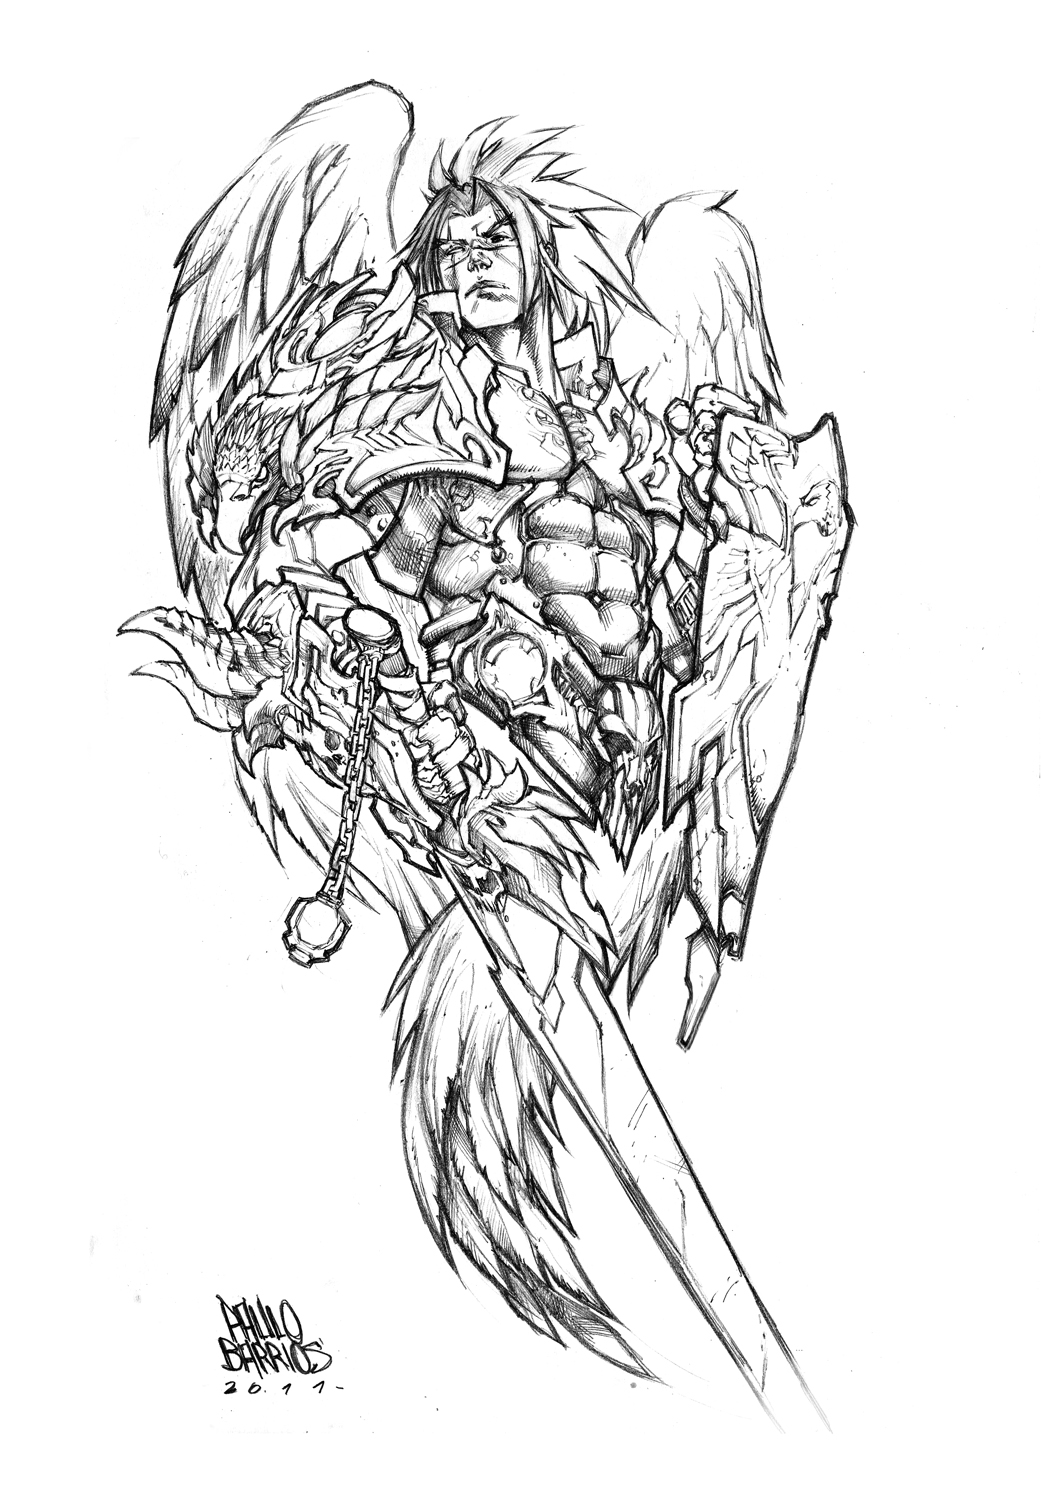 Warrior Angel by paulobarrios on DeviantArt